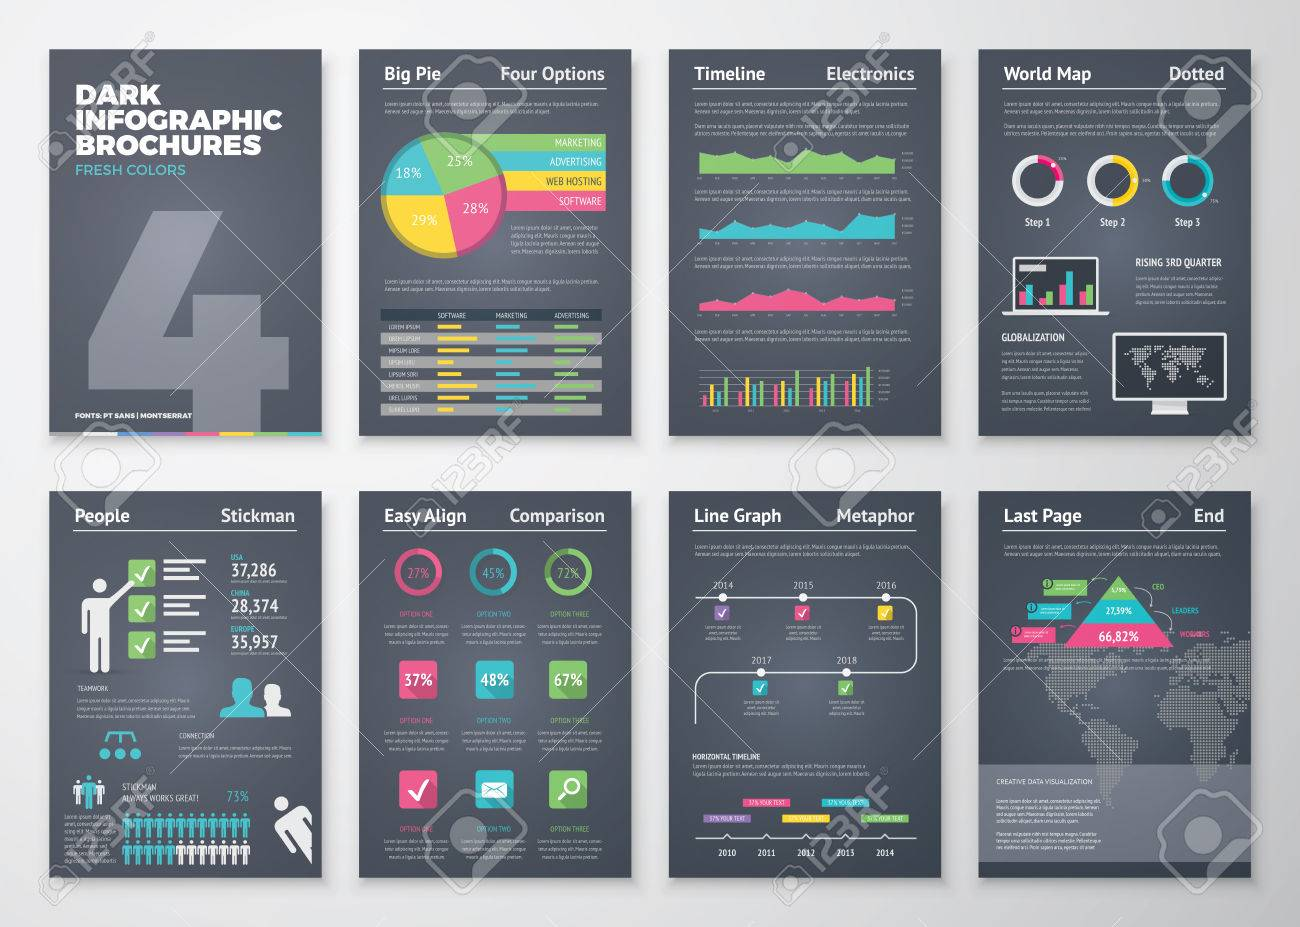 Black infographic templates in brochure style - 40631061